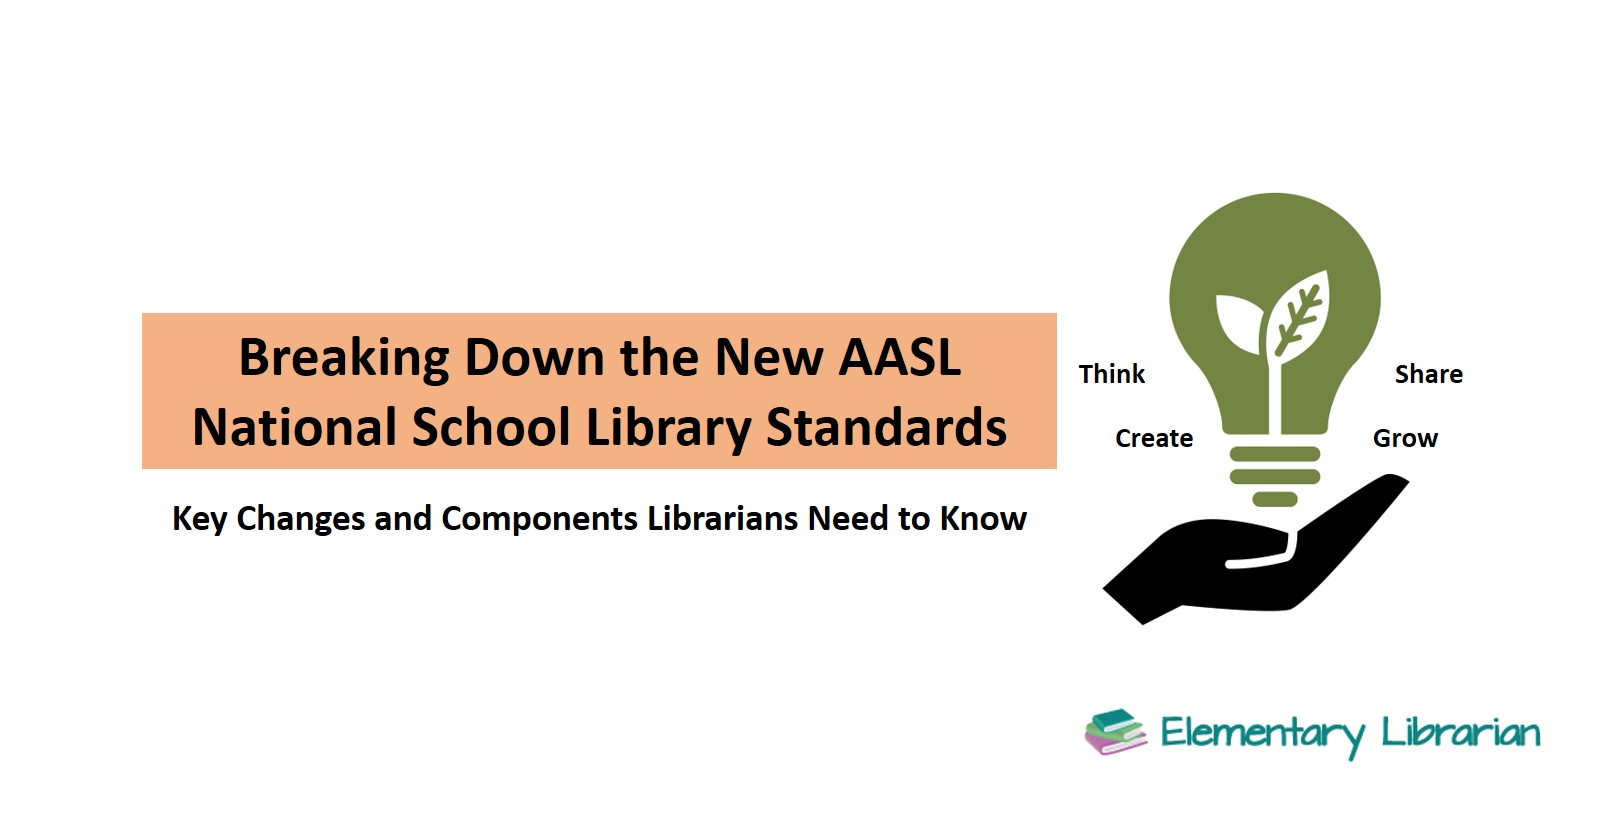 Breaking Down the New AASL National School Library Standards